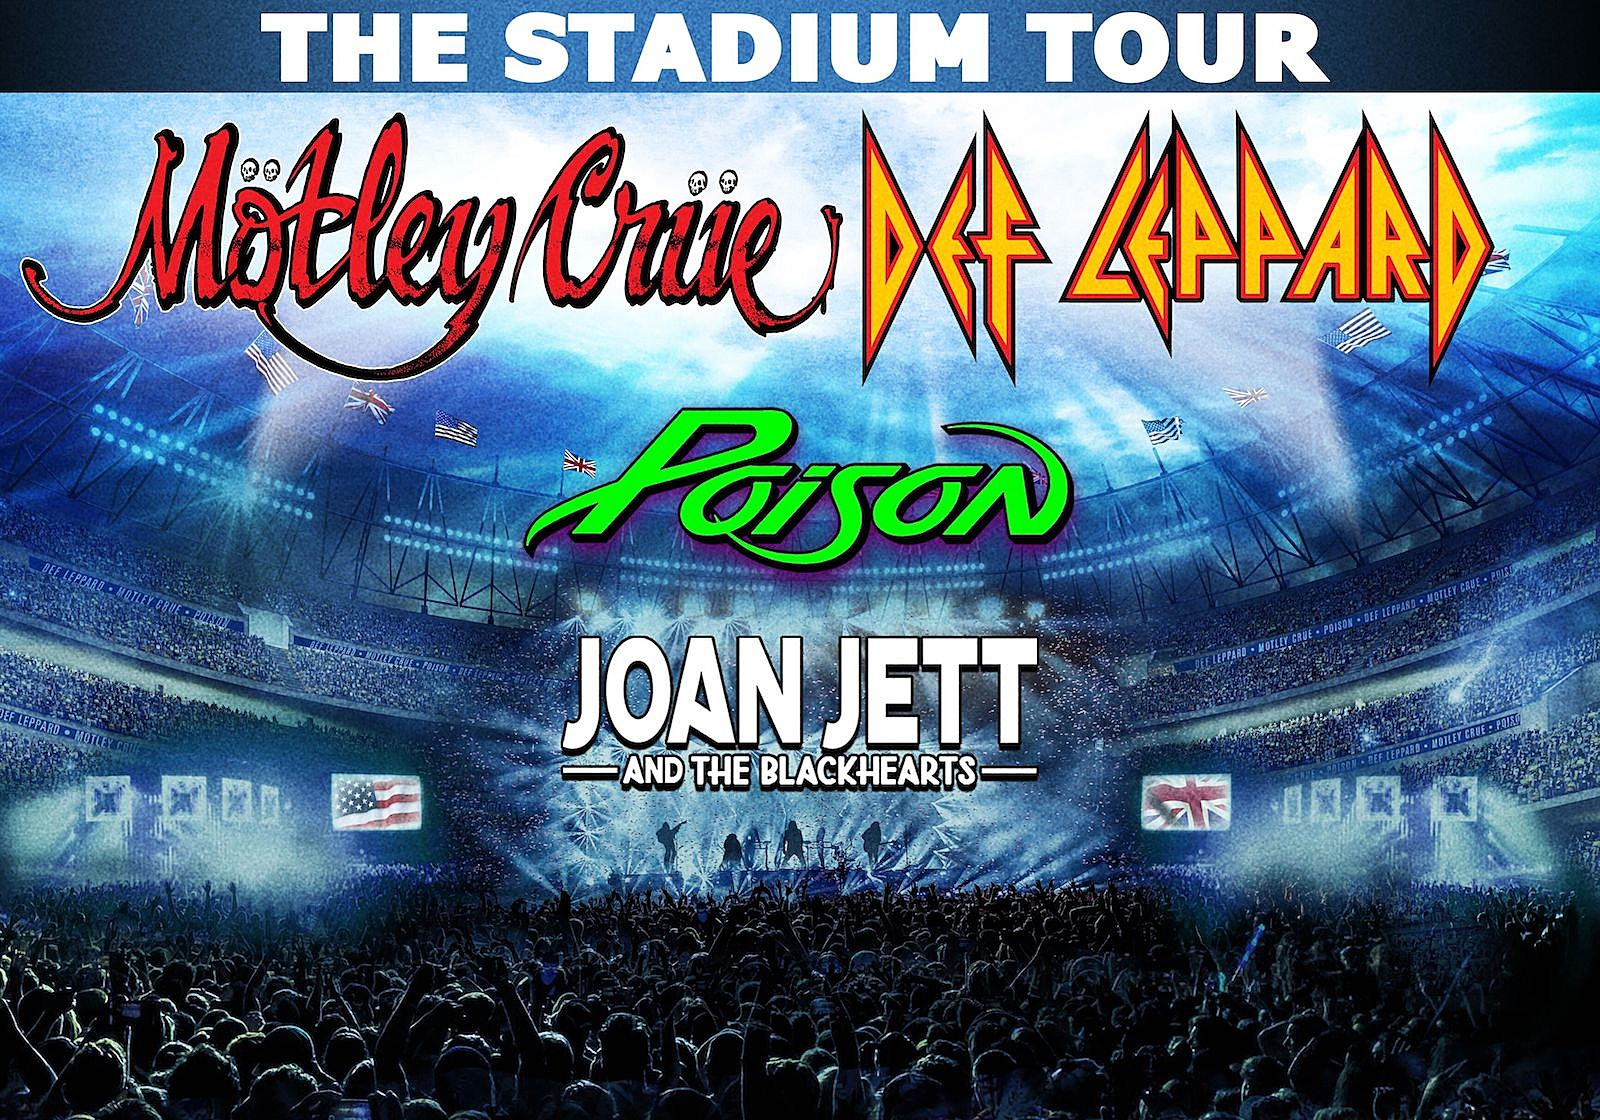 def leppard motley crue poison tour dates announced and joan jett is opening. Black Bedroom Furniture Sets. Home Design Ideas